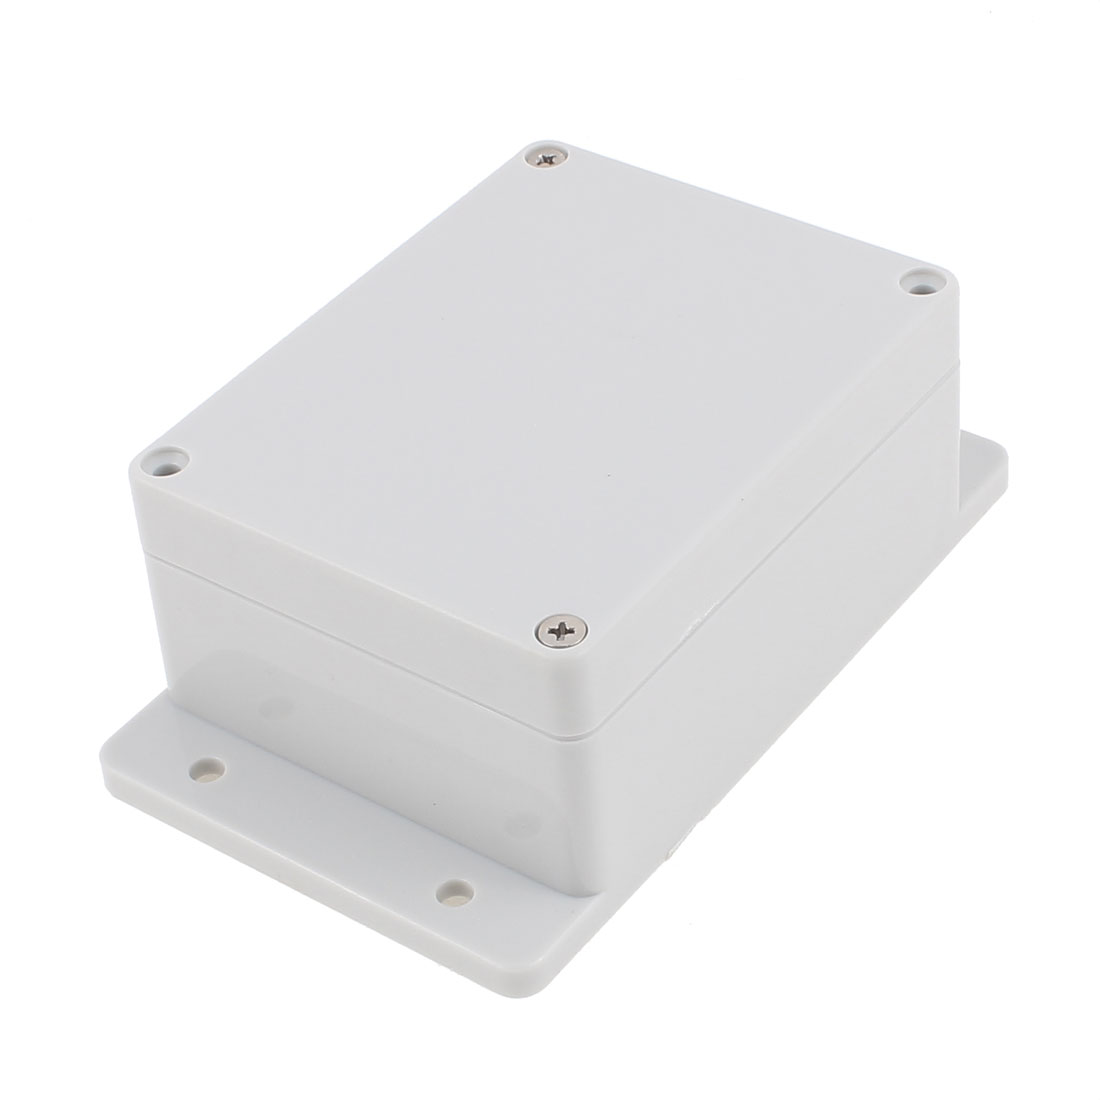 150 x 90 x 55mm Dustproof IP65 Junction Box Terminal Connecting Box Enclosure